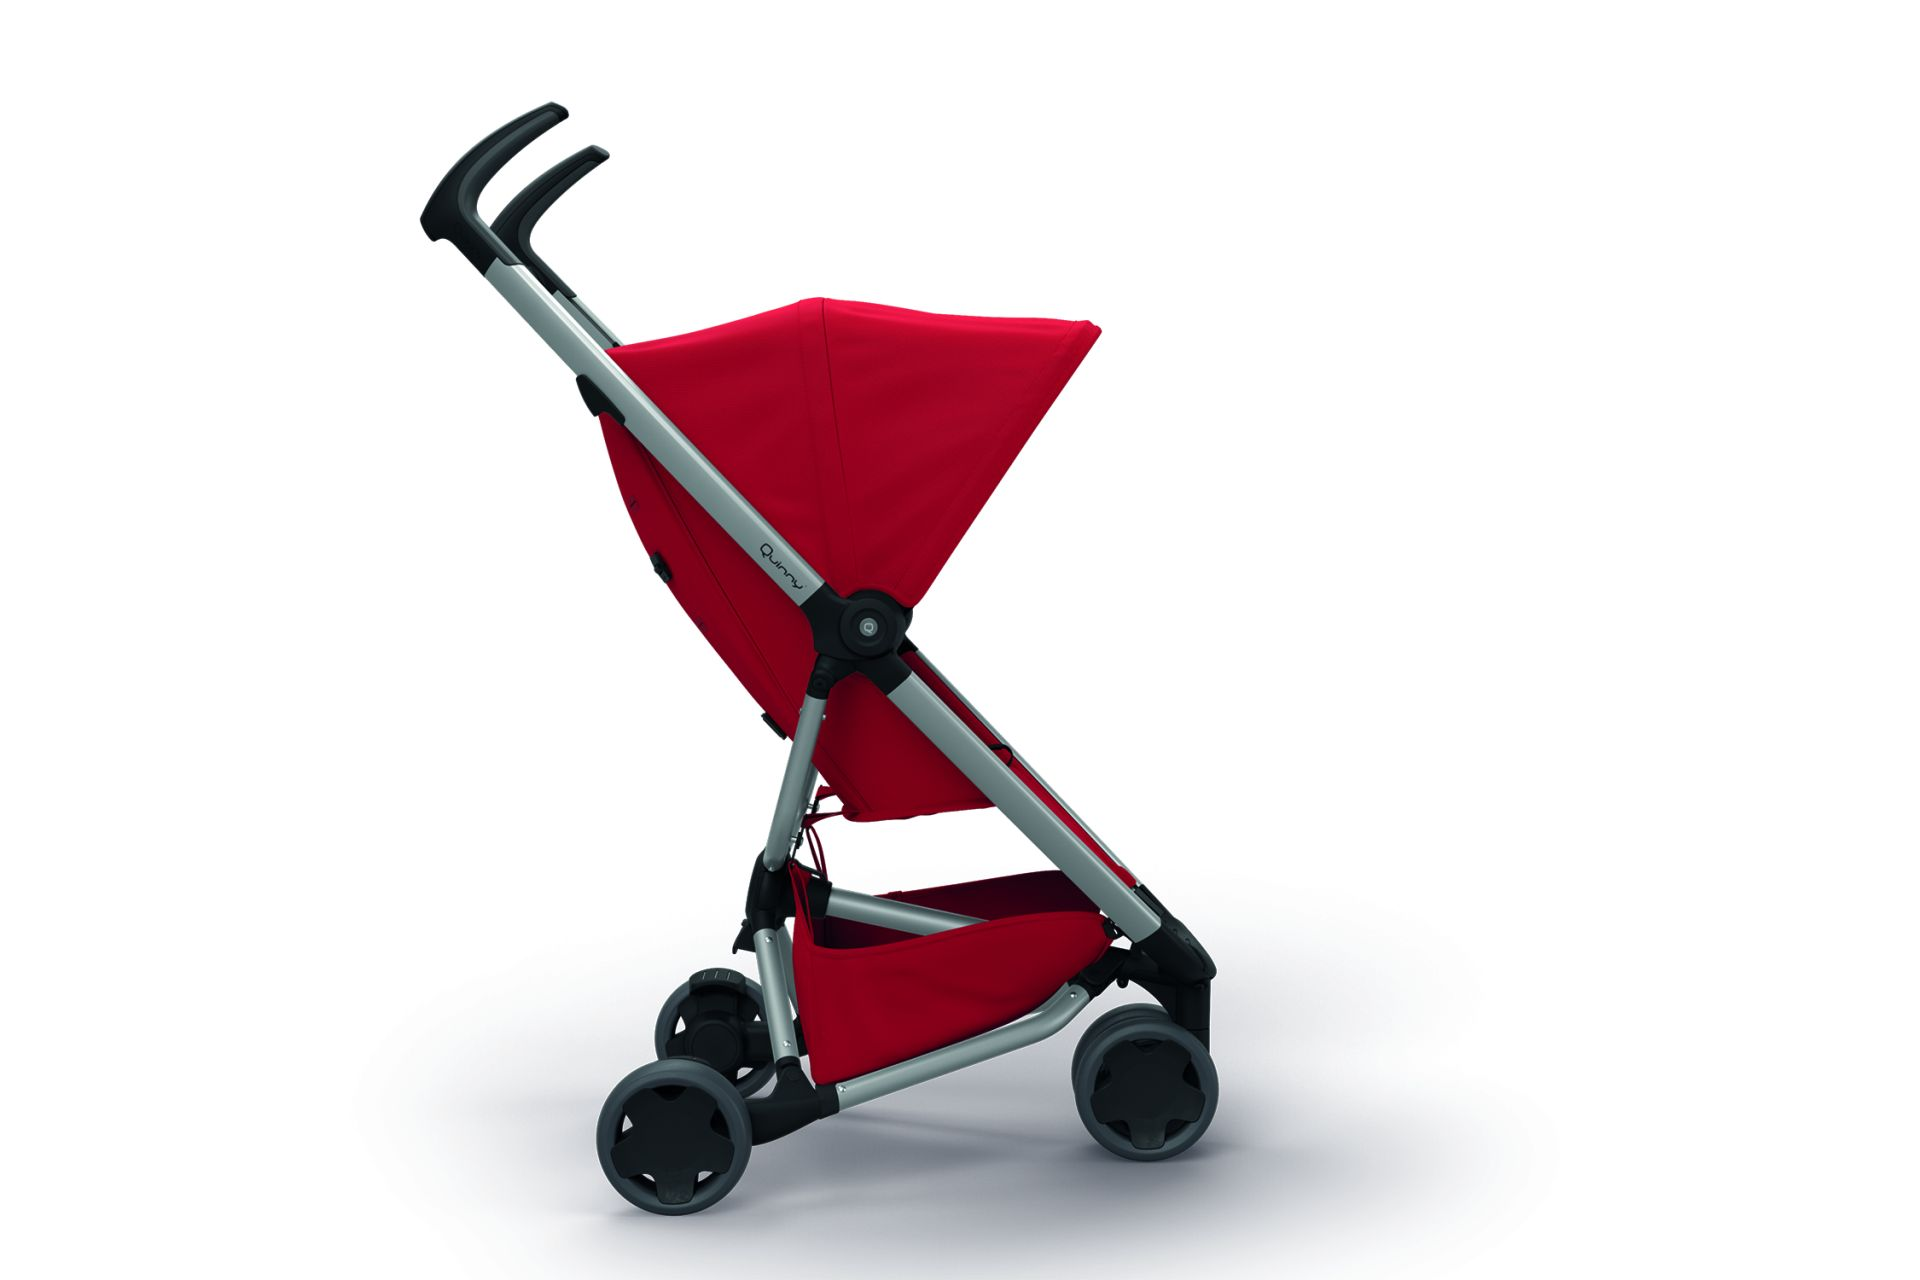 quinny buggy zapp xpress 2018 all red buy at kidsroom strollers. Black Bedroom Furniture Sets. Home Design Ideas